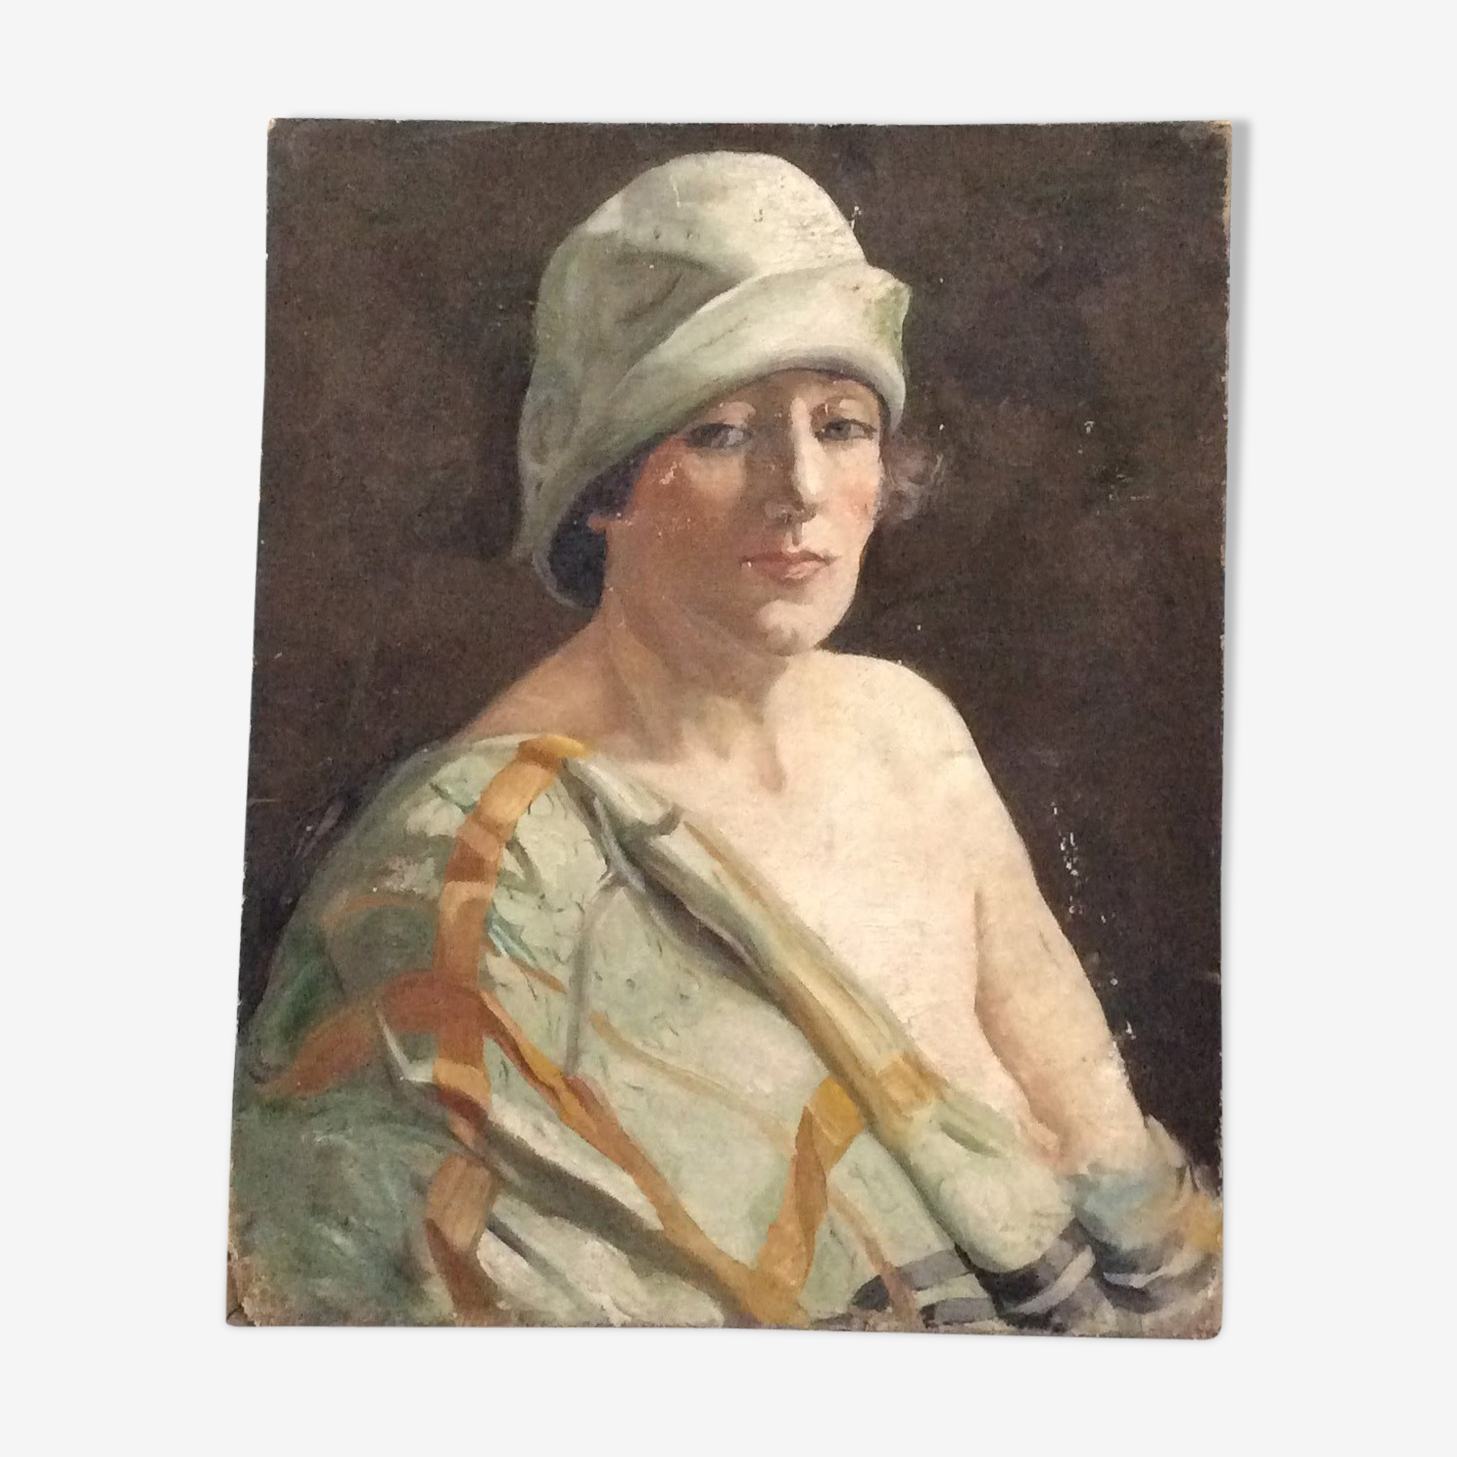 Oil on canvas - woman in hat